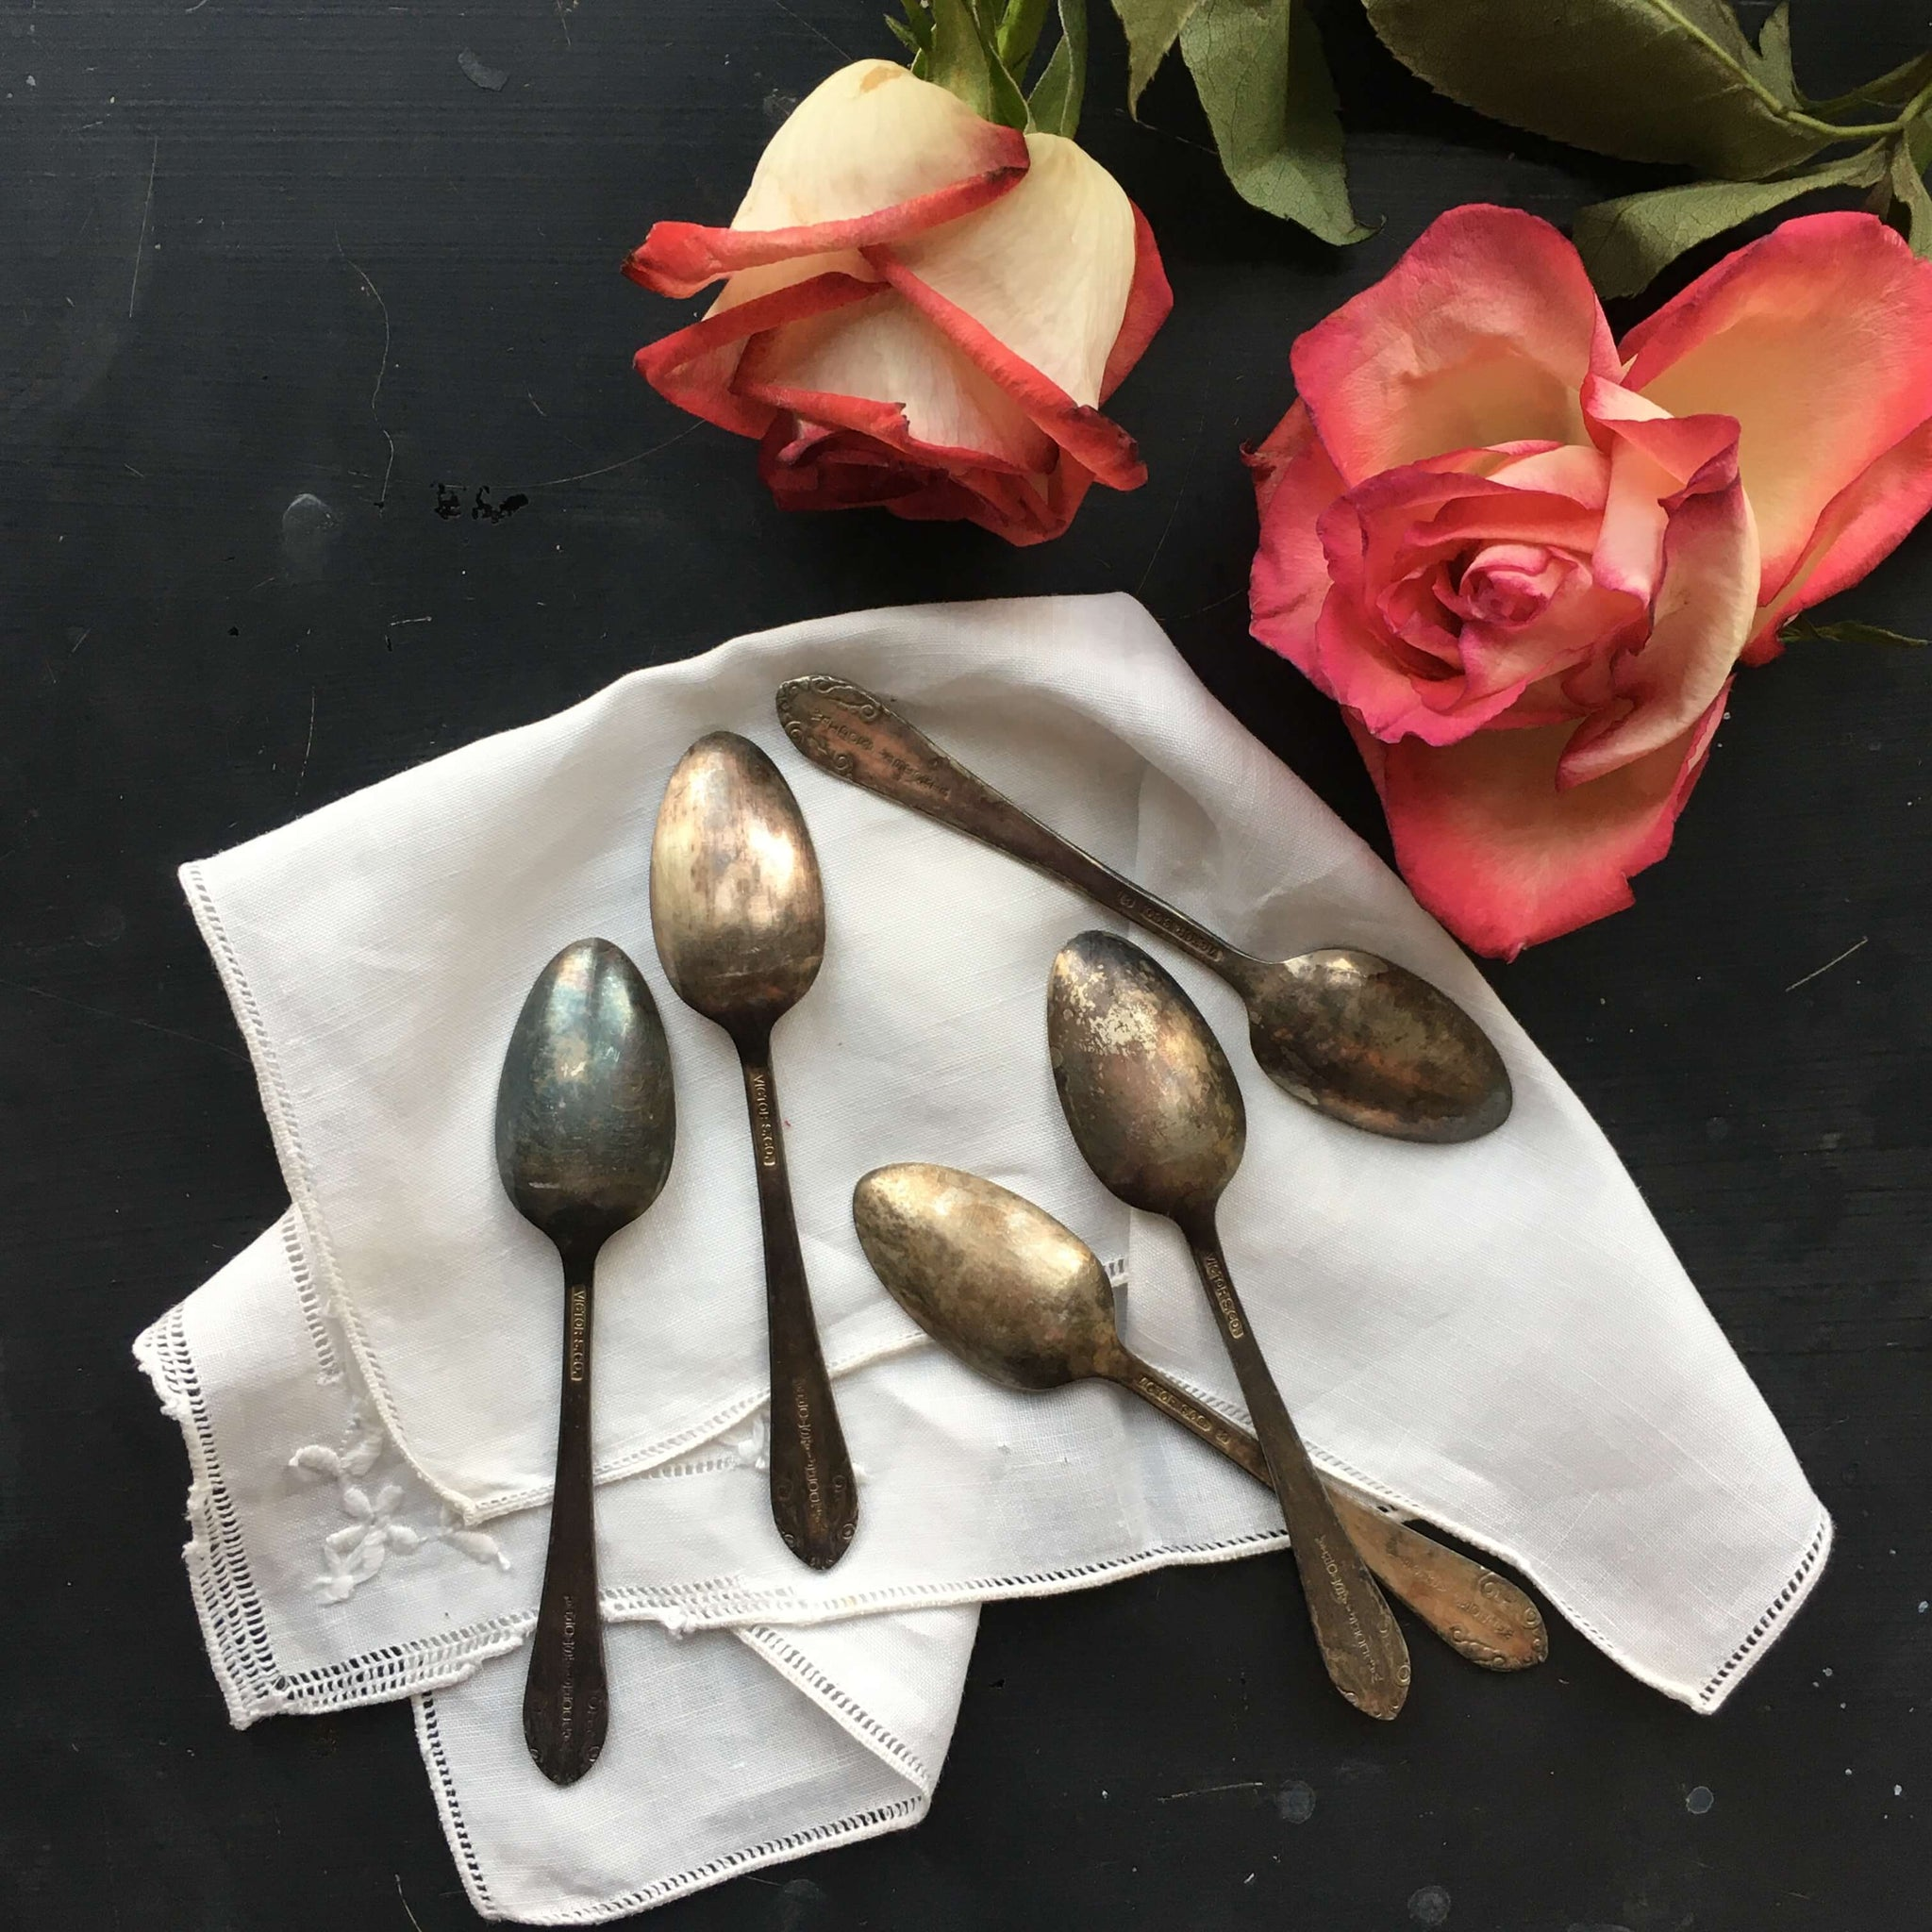 Antique Hotel Flatware - Waldorf Astoria Demitasse Spoons - Set of 5 - Victor Silver Company - Sterling Silver Flatware circa 1910